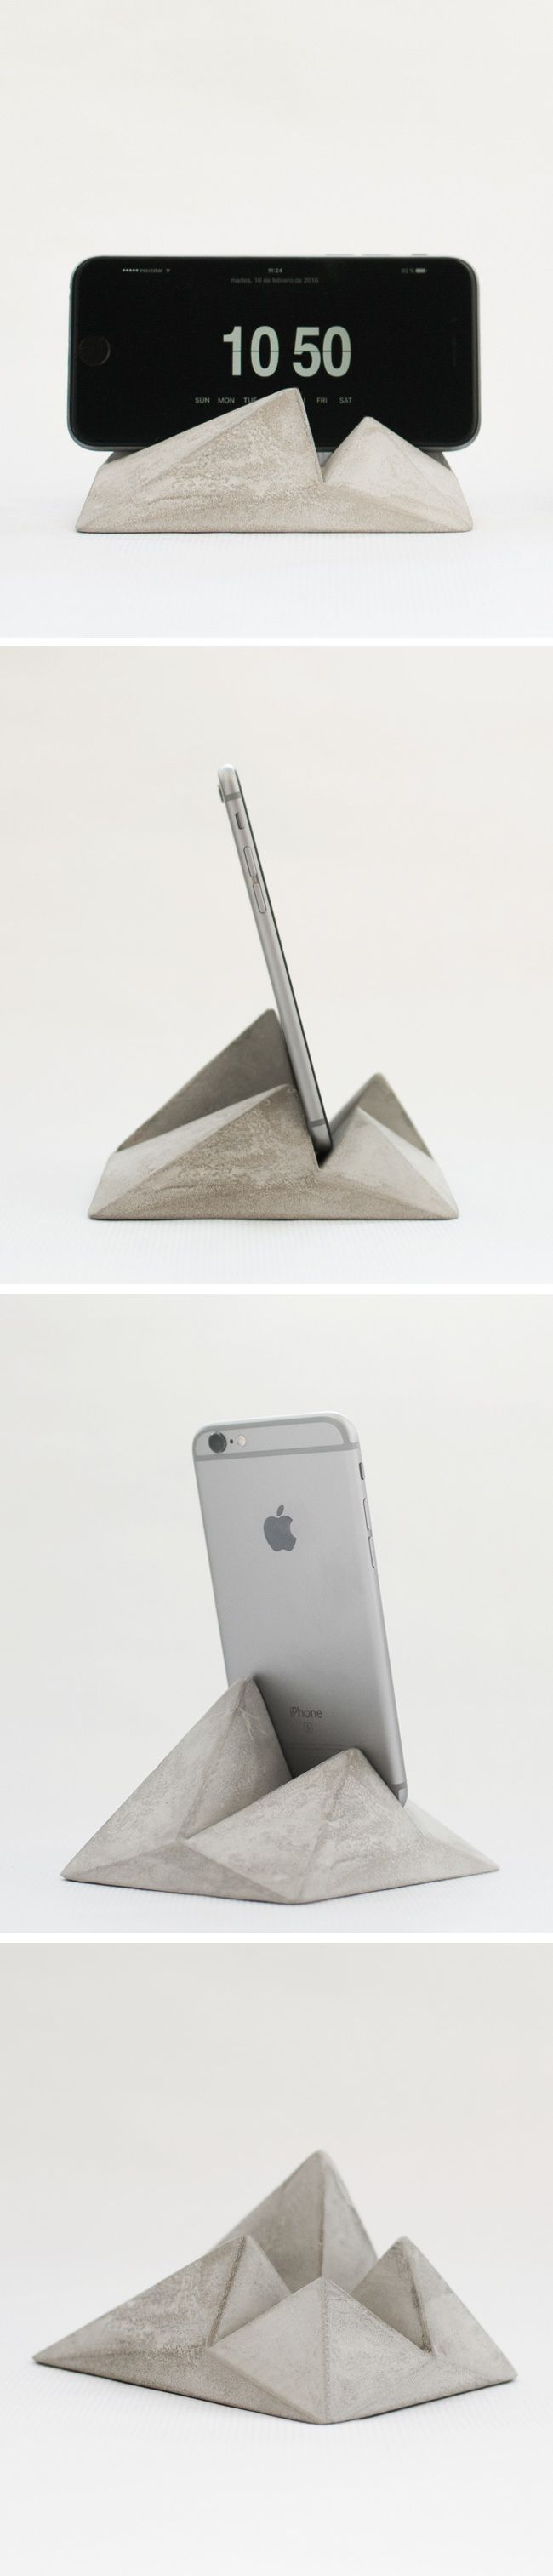 diy phone stand with binder clips	  	diy phone stand for desk	  	diy phone stand cardboard	  	diy phone stand paper clip	  	diy phone stand wood	  	diy phone stand card	  	diy phone stand paper	  	diy phone stands	  	diy phone stand for car	  	diy phone stand for filming	  	diy phone stand